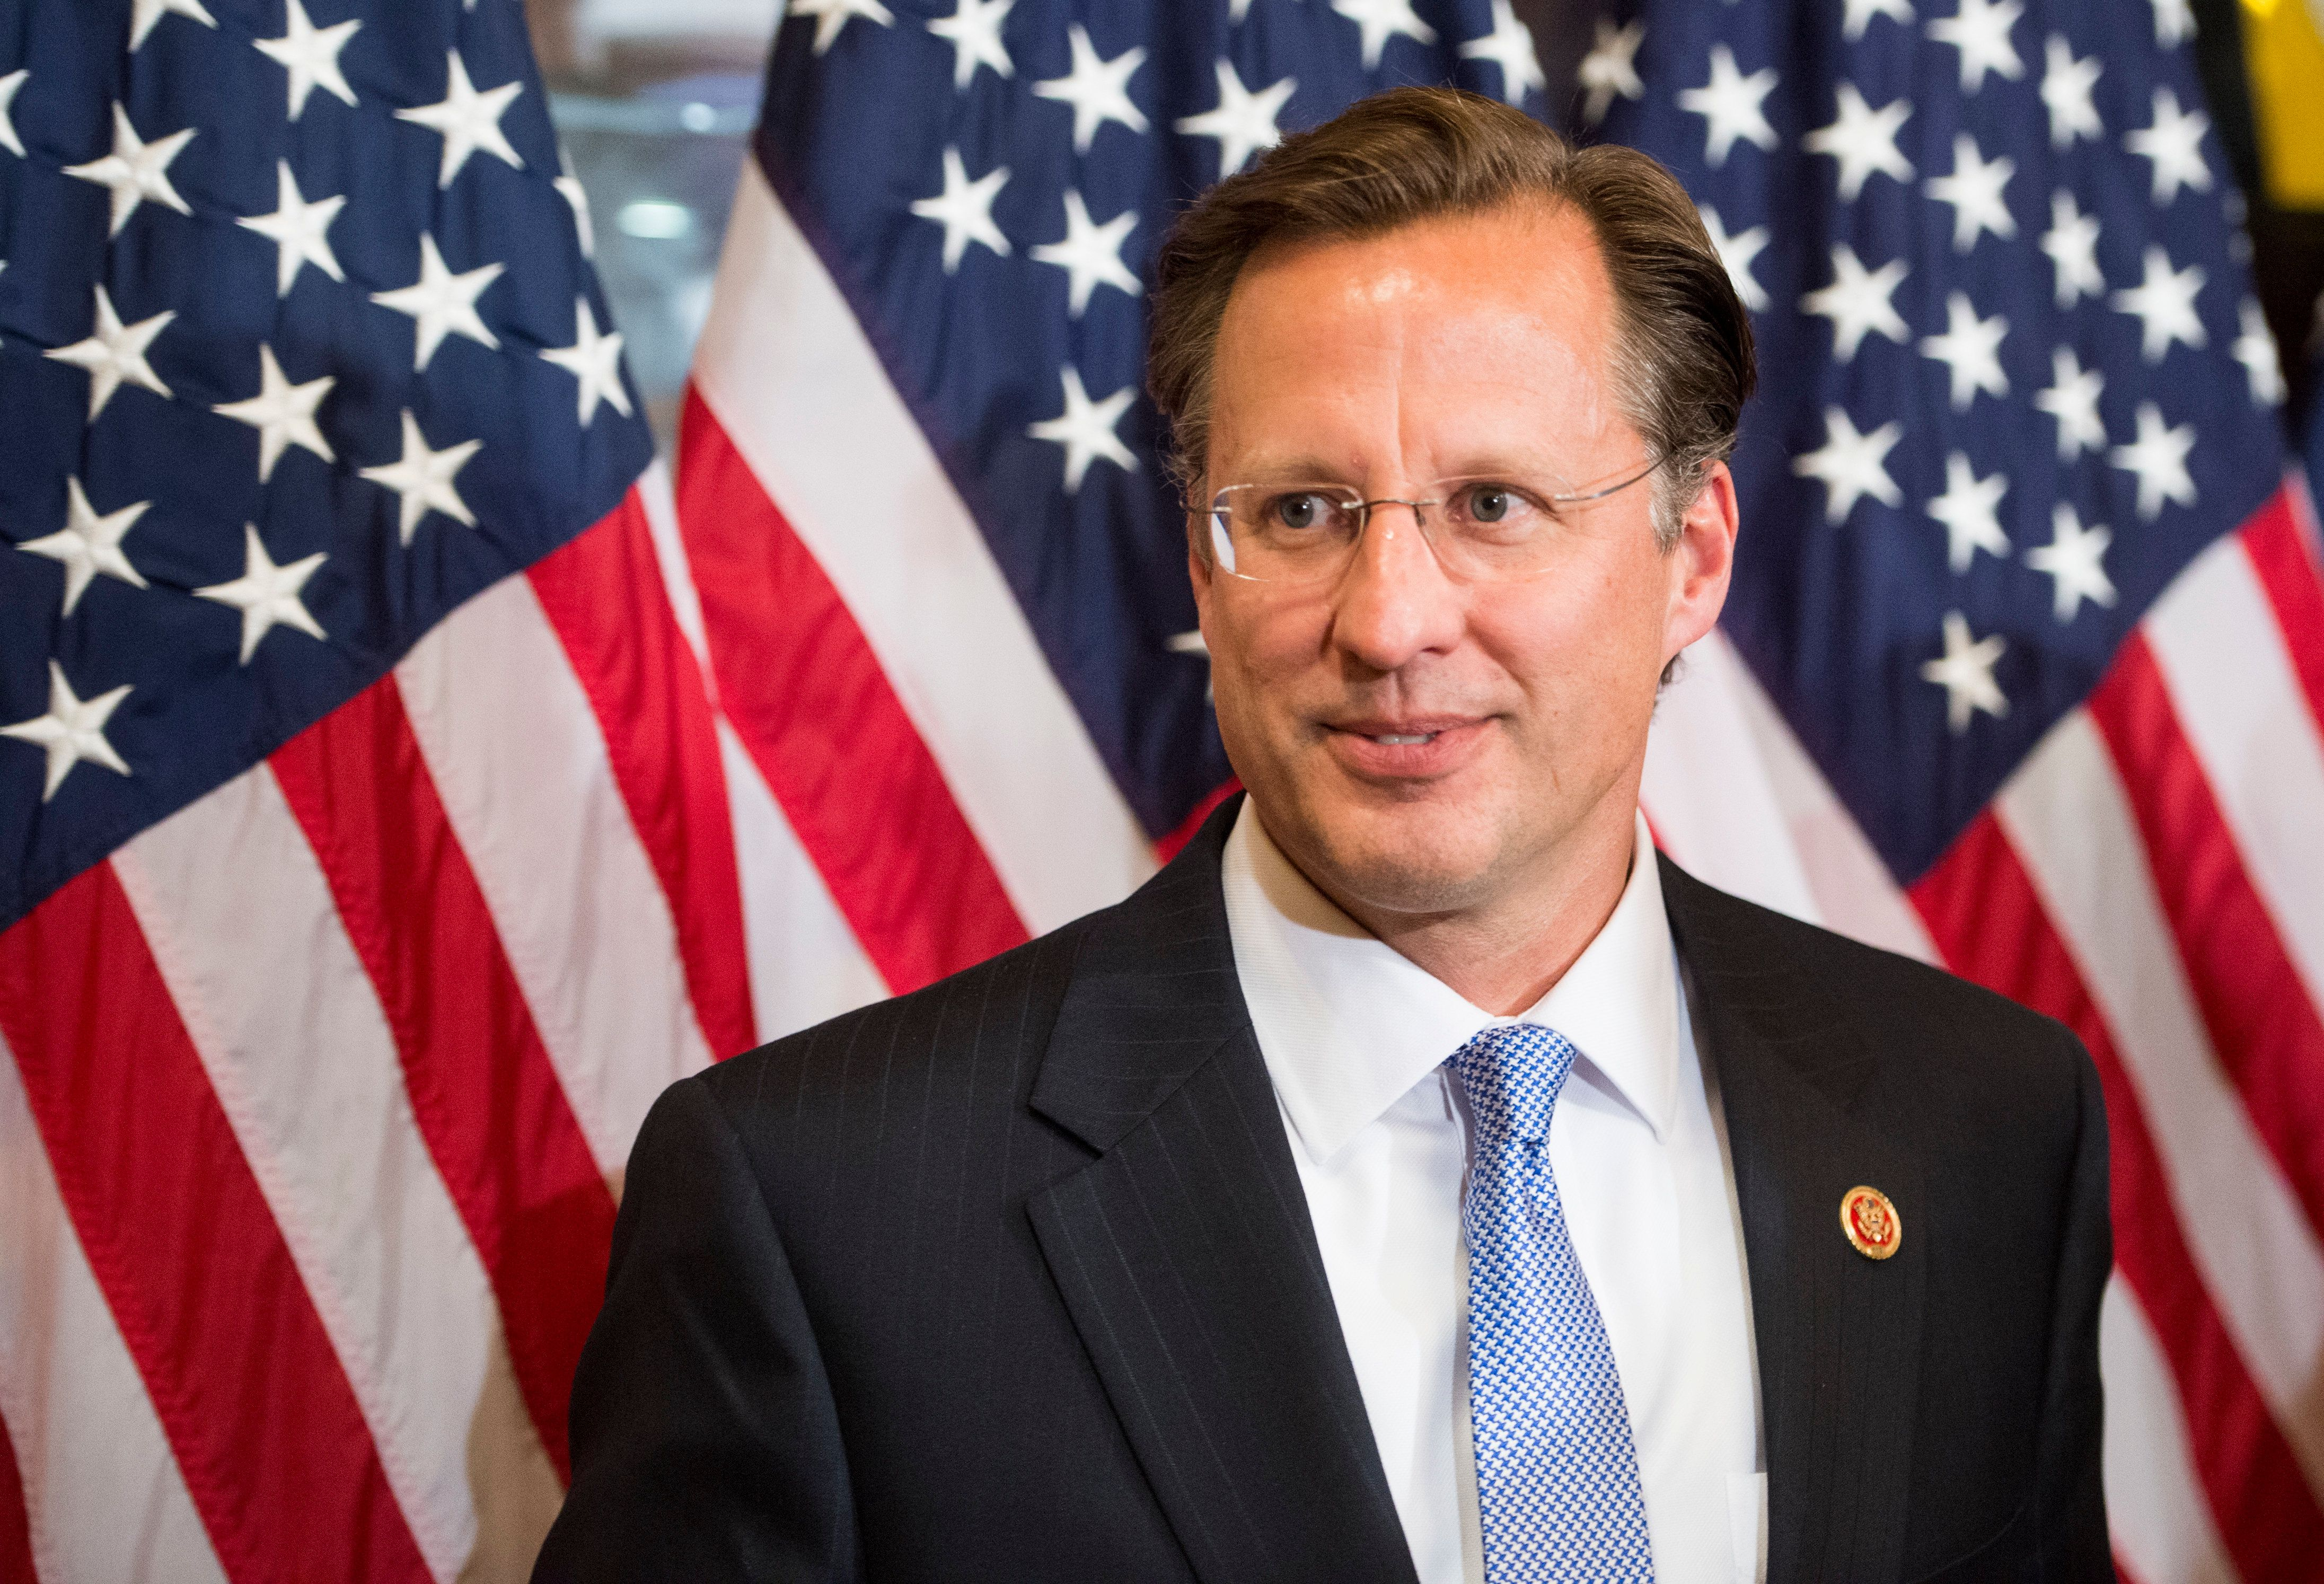 UNITED STATES - NOVEMBER12: Rep.-elect Dave Brat, R-Va., leaves the room following his ceremonial swearing-in photo-op with Speaker of the House John Boehner in the Capitol on Wednesday, Nov. 12, 2014. (Photo By Bill Clark/CQ Roll Call)